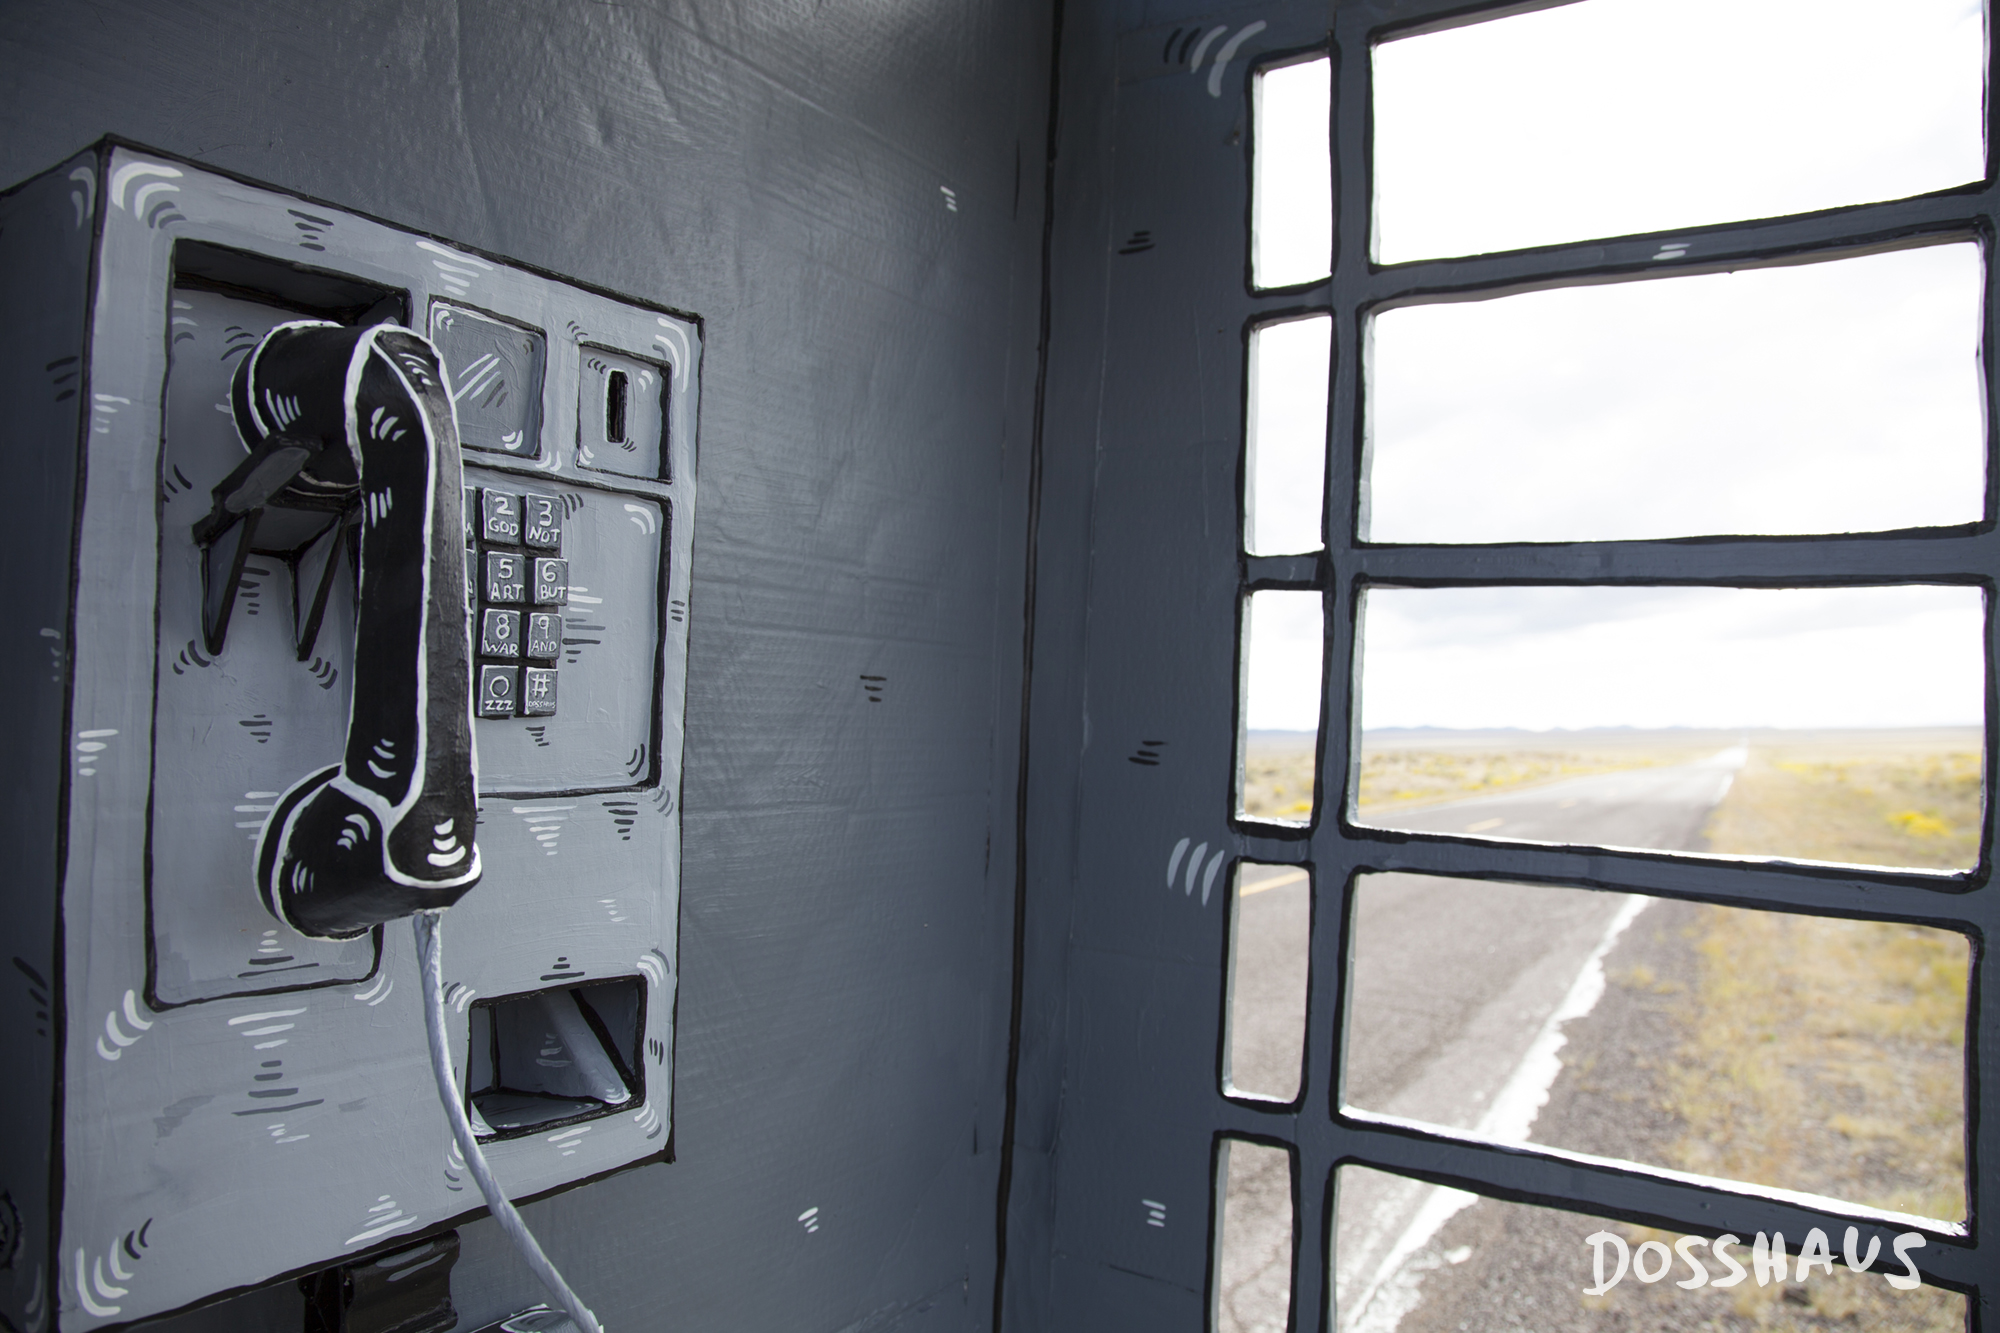 Incredible Vintage Works Fashioned in Painted Cardboard by Dosshaus - Telephone Booth